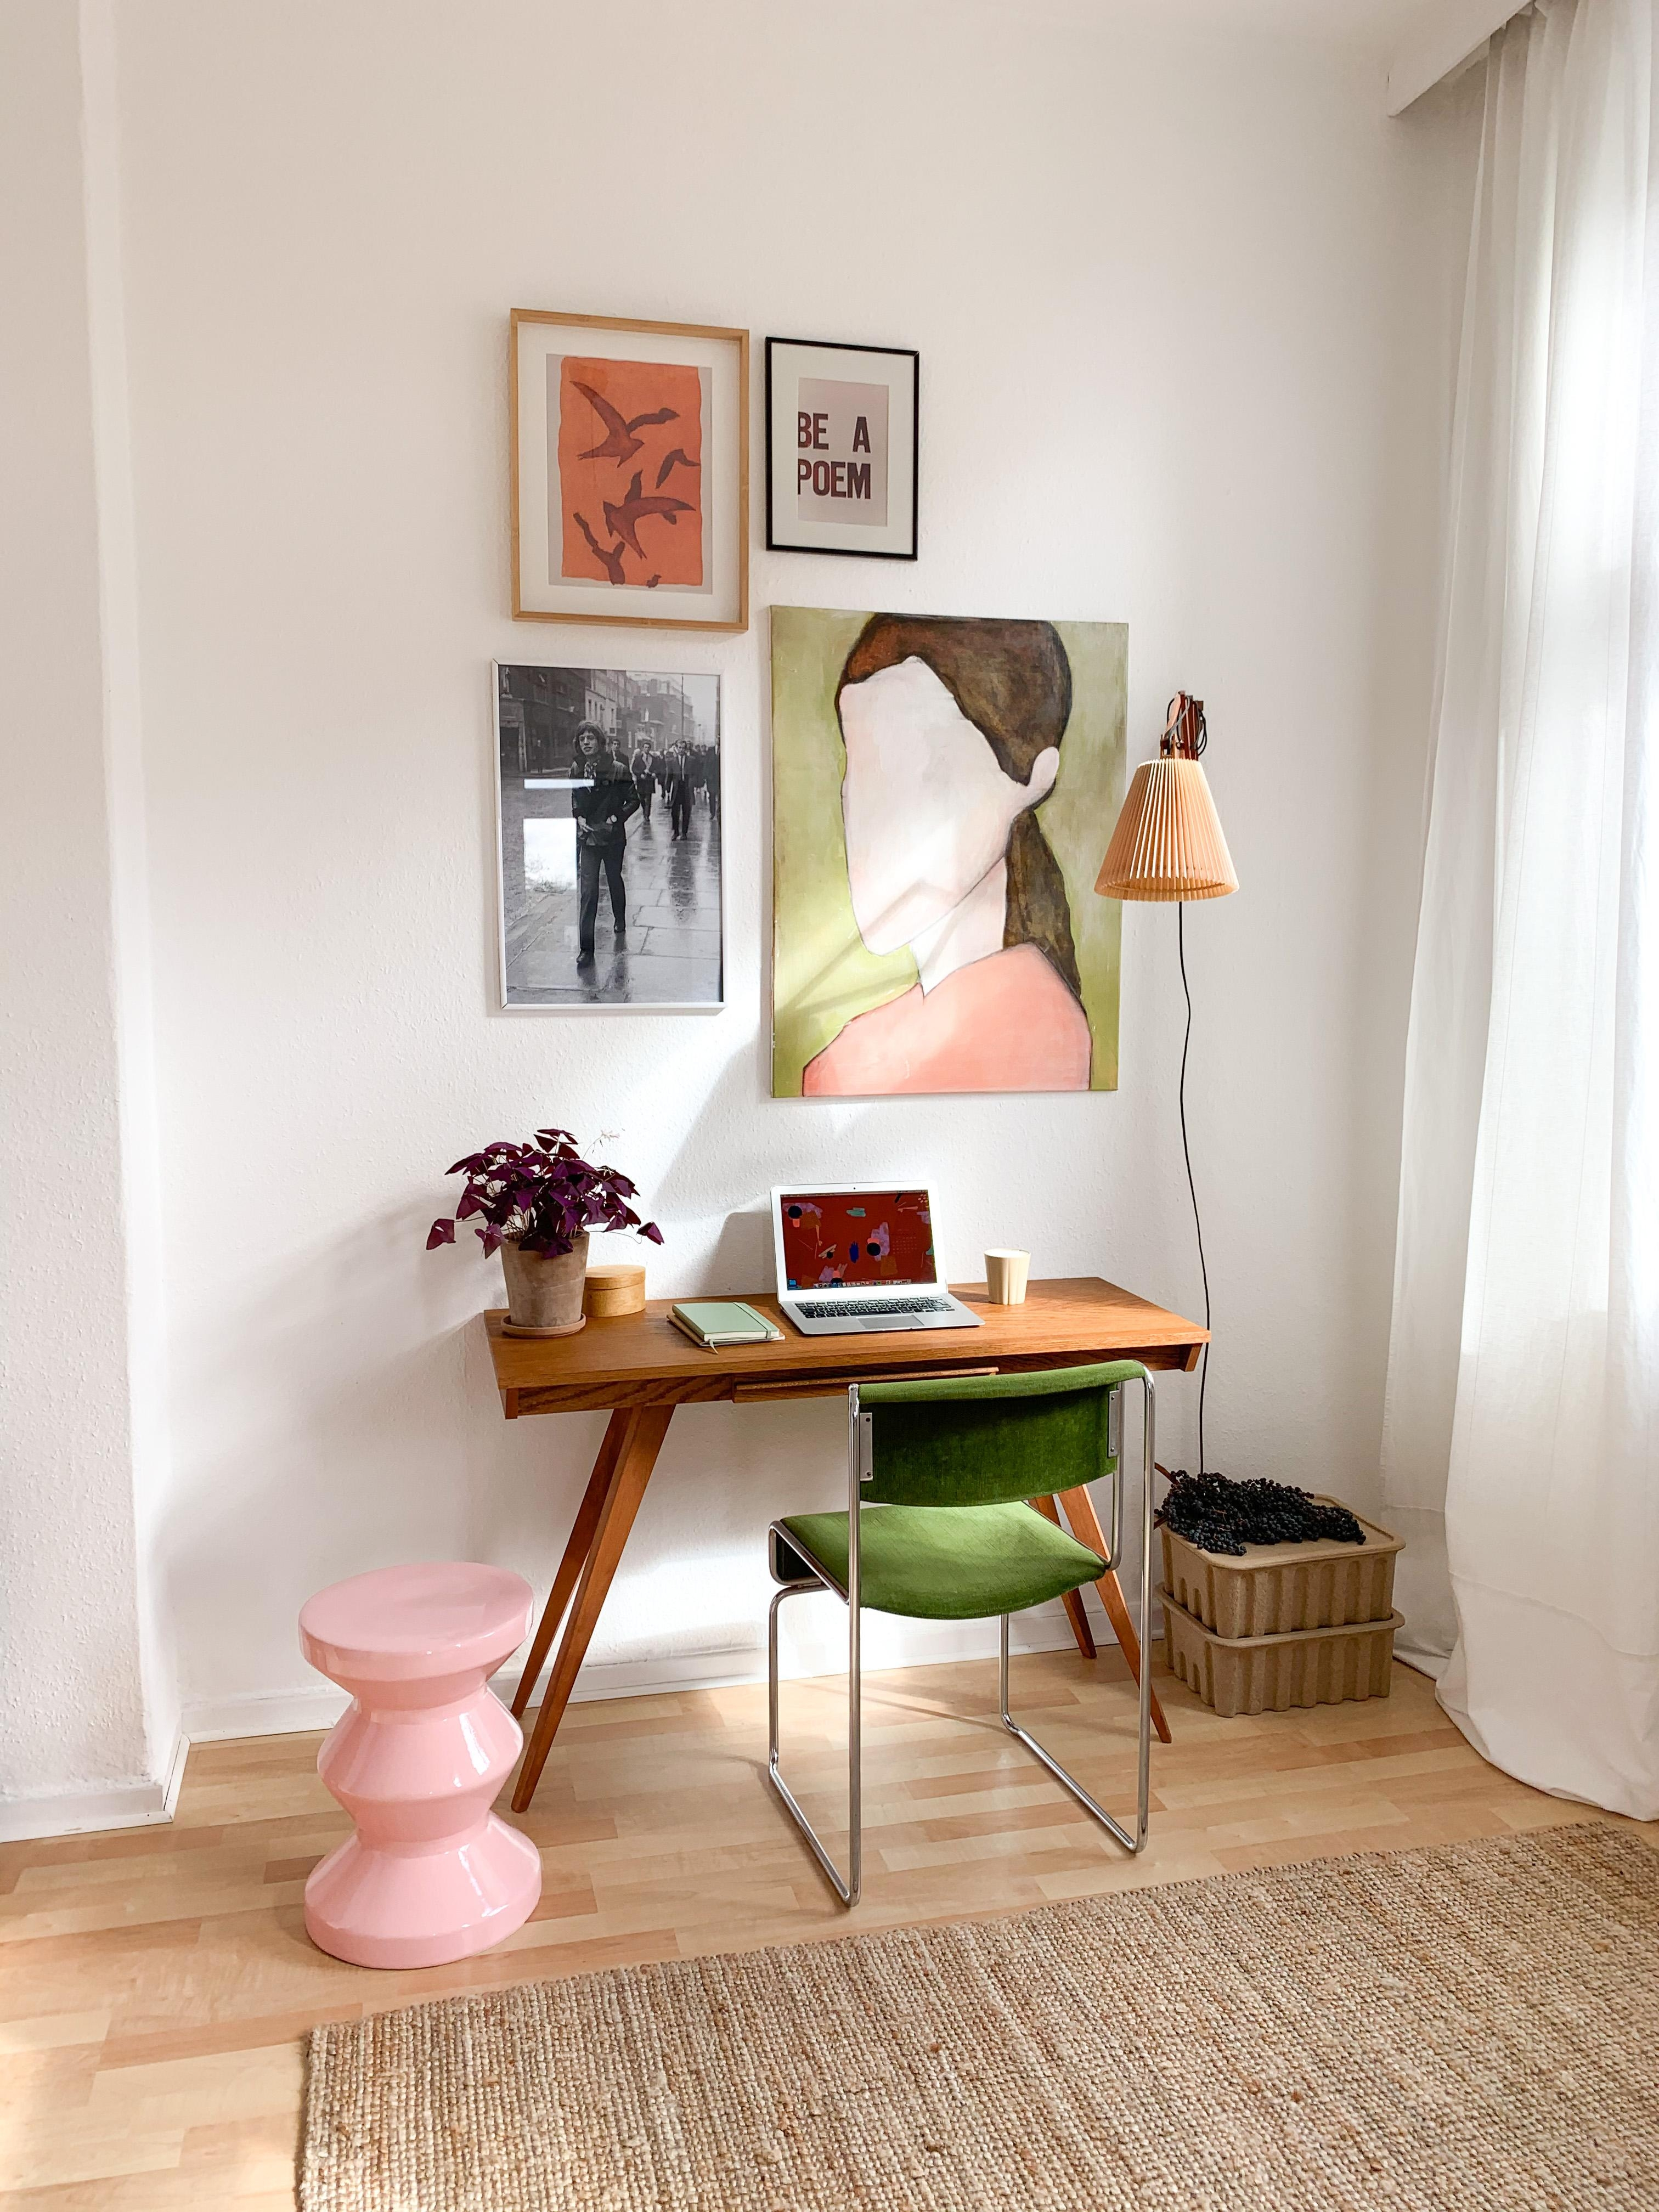 #homeoffice #workfromhome #office #schreibtisch #gallerywall #colorfulhome #colourfulhome #altbau #büro